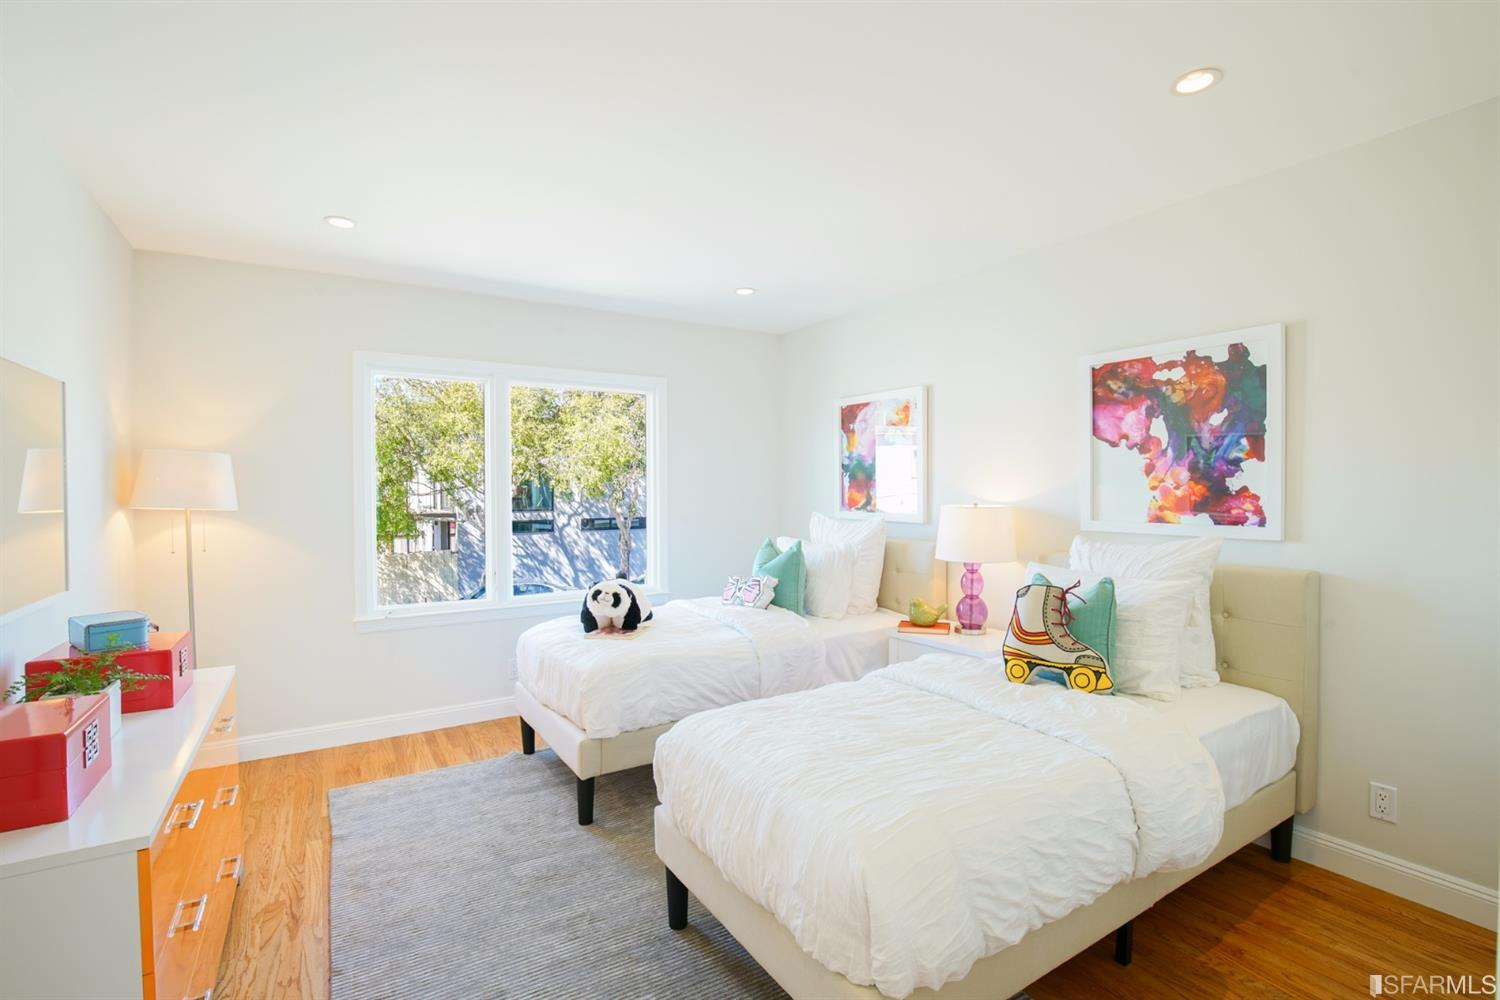 Sold: 317 Franconia Street – Our Clients First: Derek Chin and ...